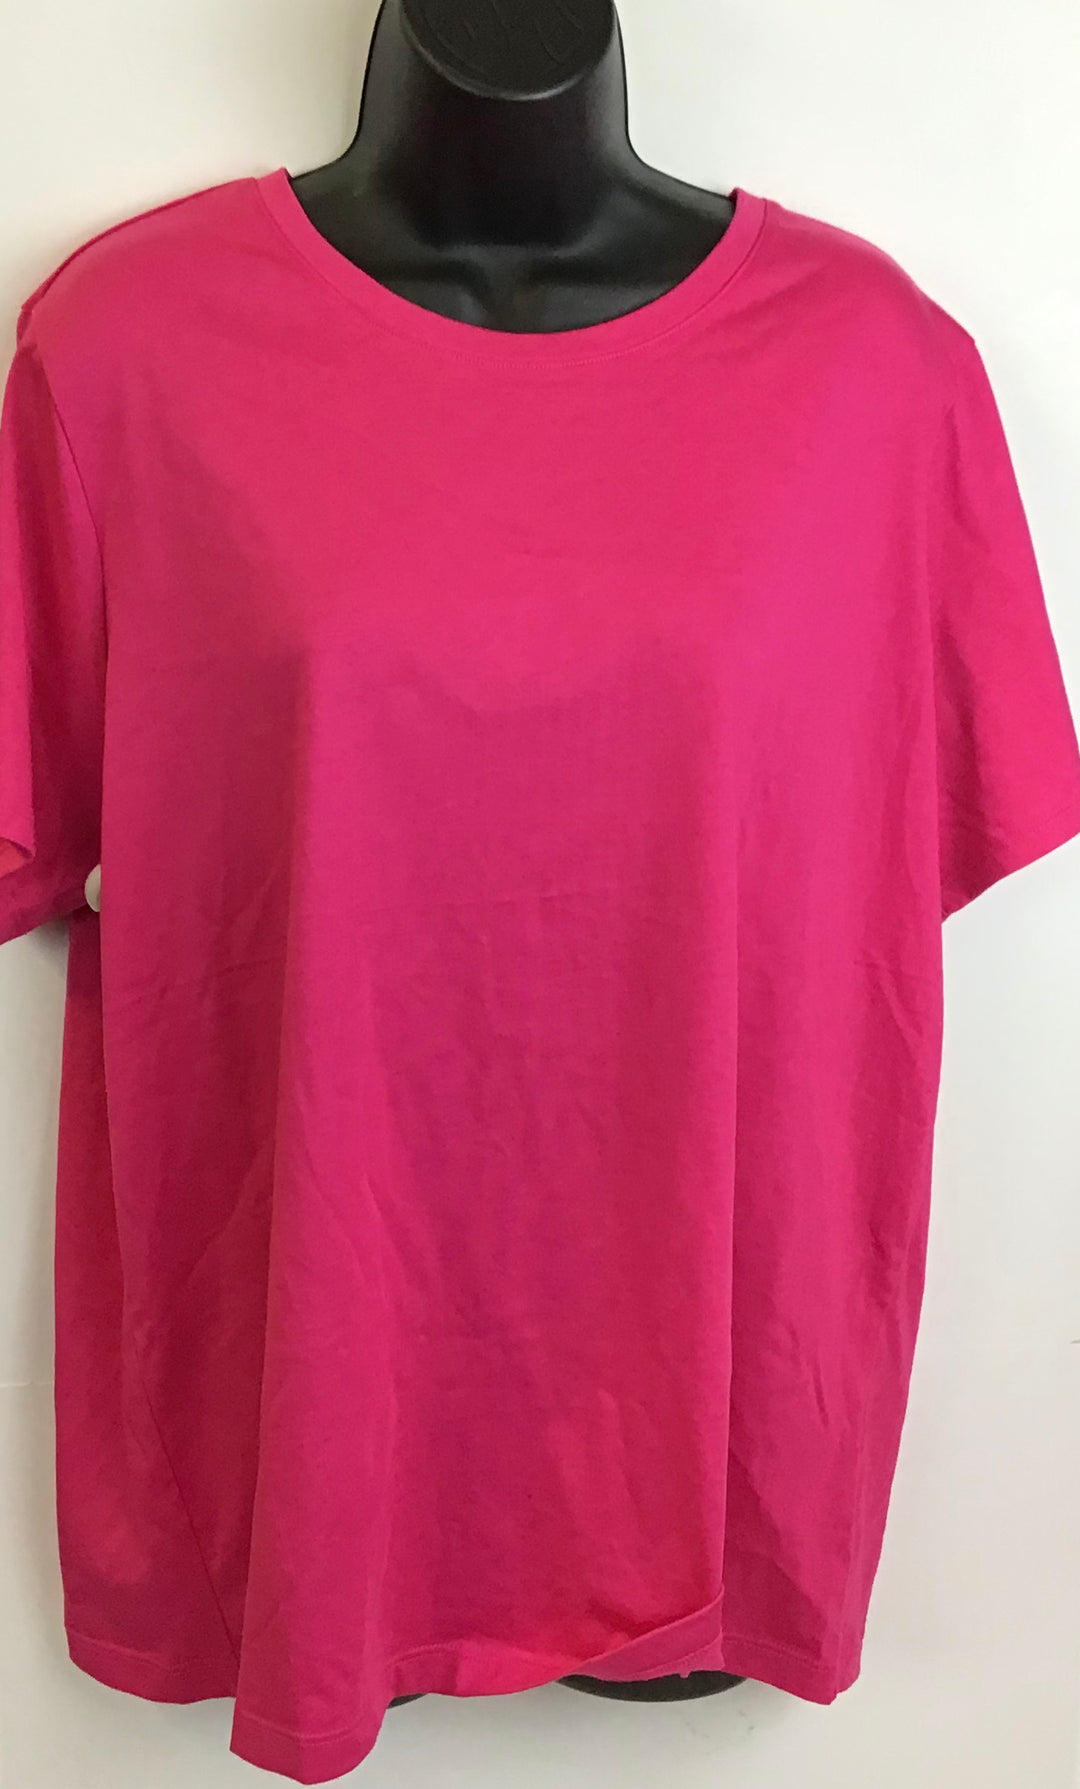 Primary Photo - BRAND: LANDS END <BR>STYLE: TOP SHORT SLEEVE <BR>COLOR: PINK <BR>SIZE: XL <BR>SKU: 213-213143-4138